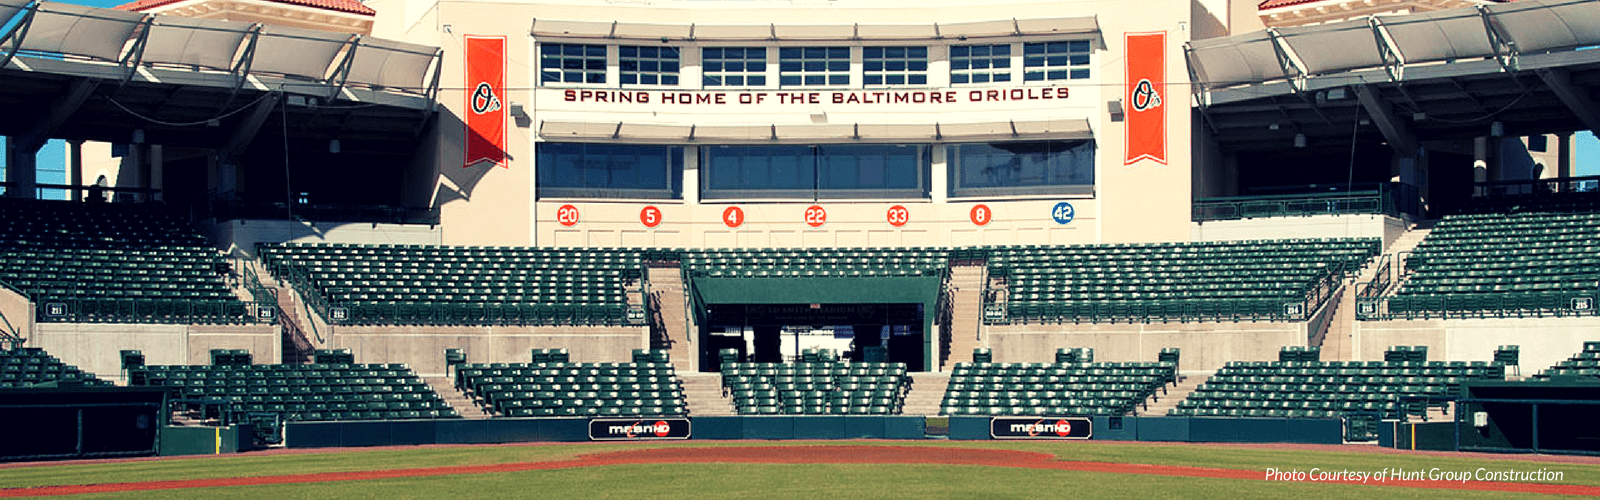 Ed Smith Stadium- Spring home of the Baltimore Orioles